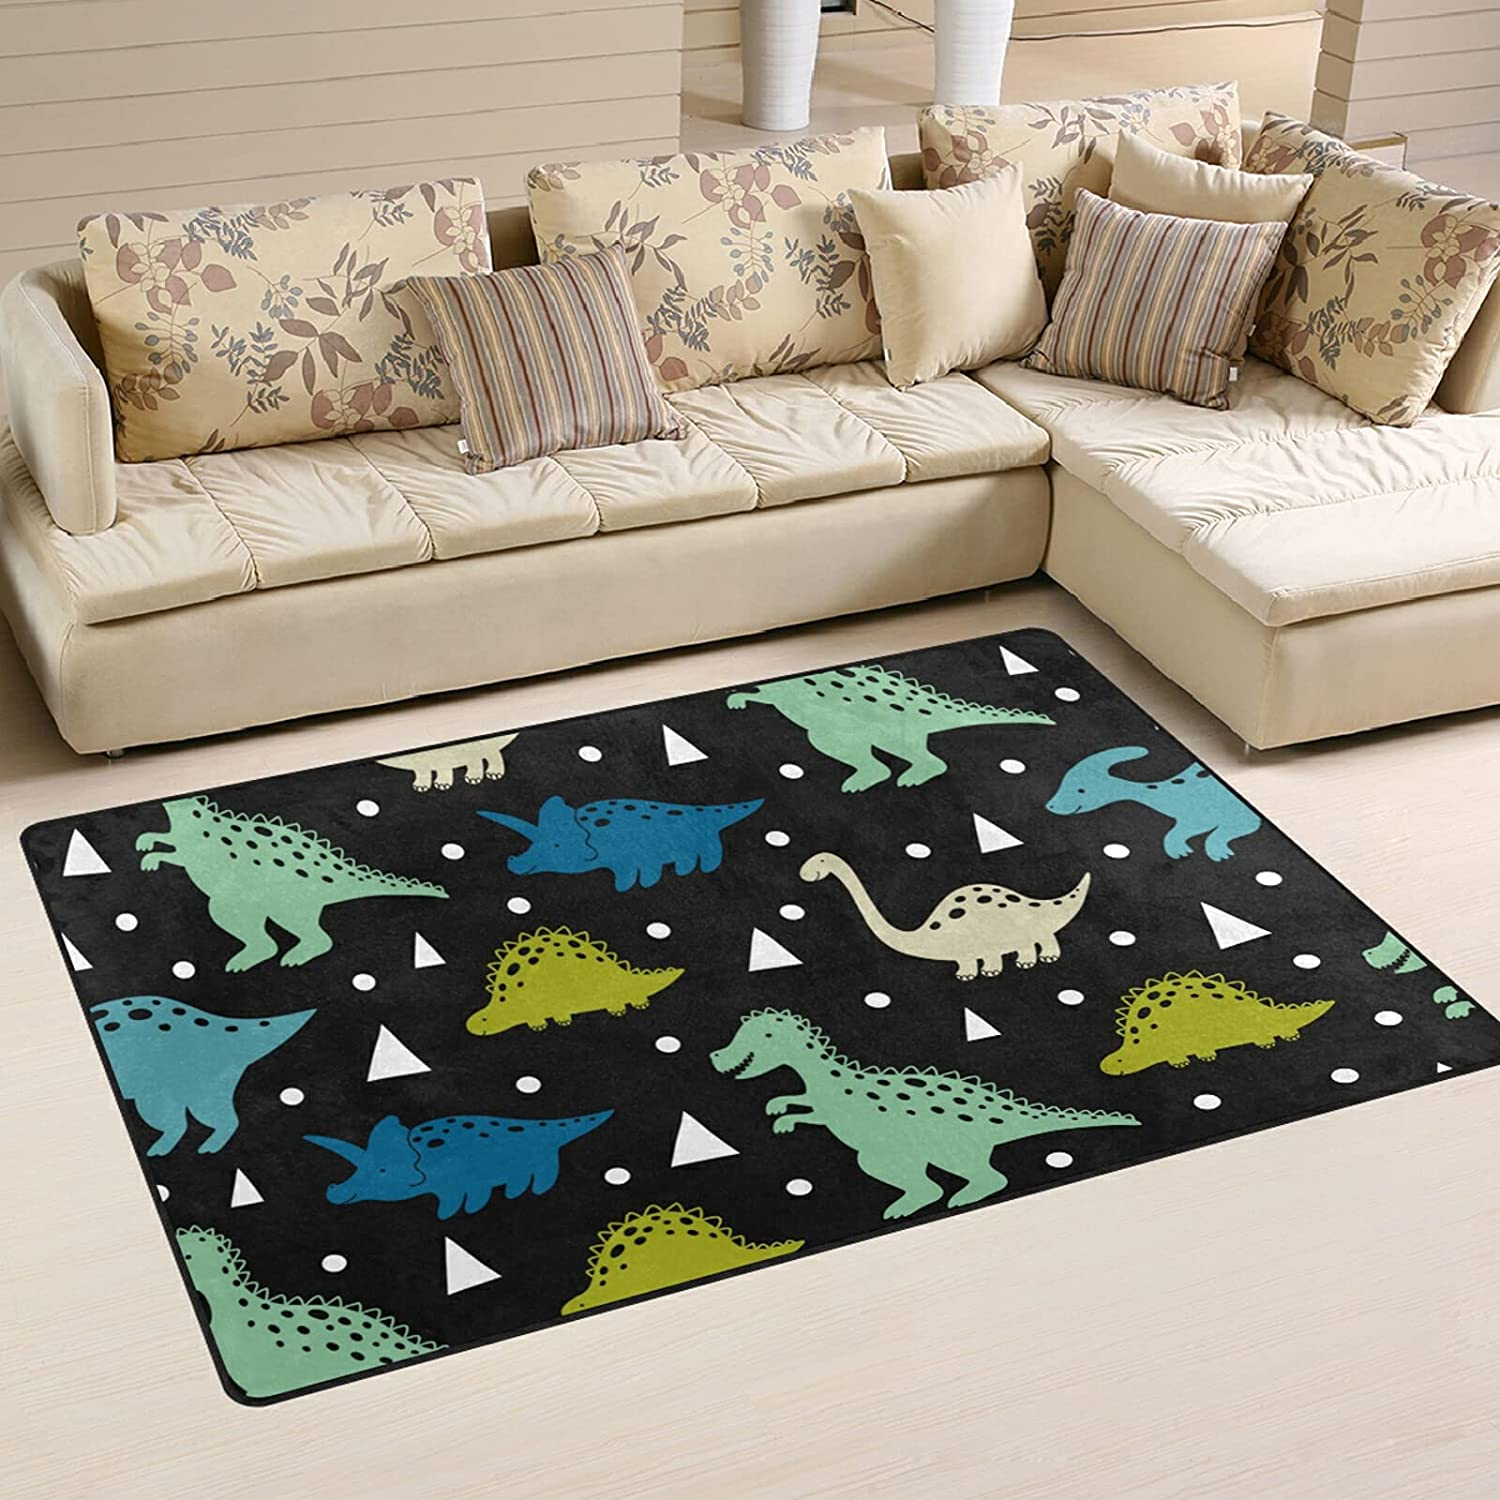 Cute Dinosaurs Selling rankings Pattern Large Soft Nursery Rug Rugs Playmat 2021new shipping free Area